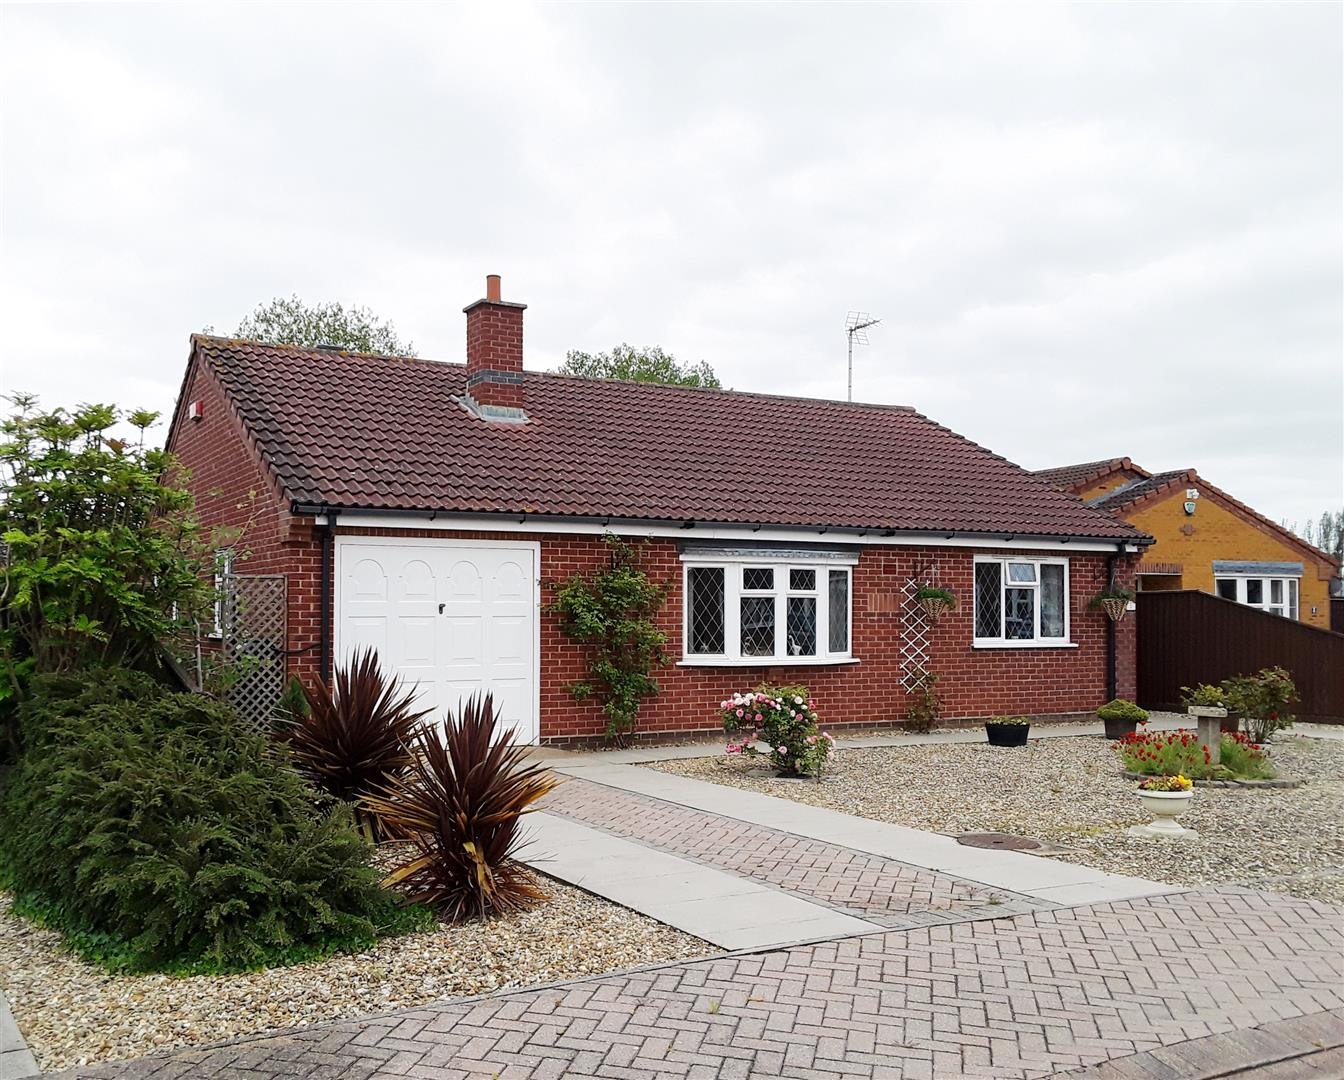 2 bed detached bungalow for sale in Long Sutton Spalding, PE12 9FP, PE12